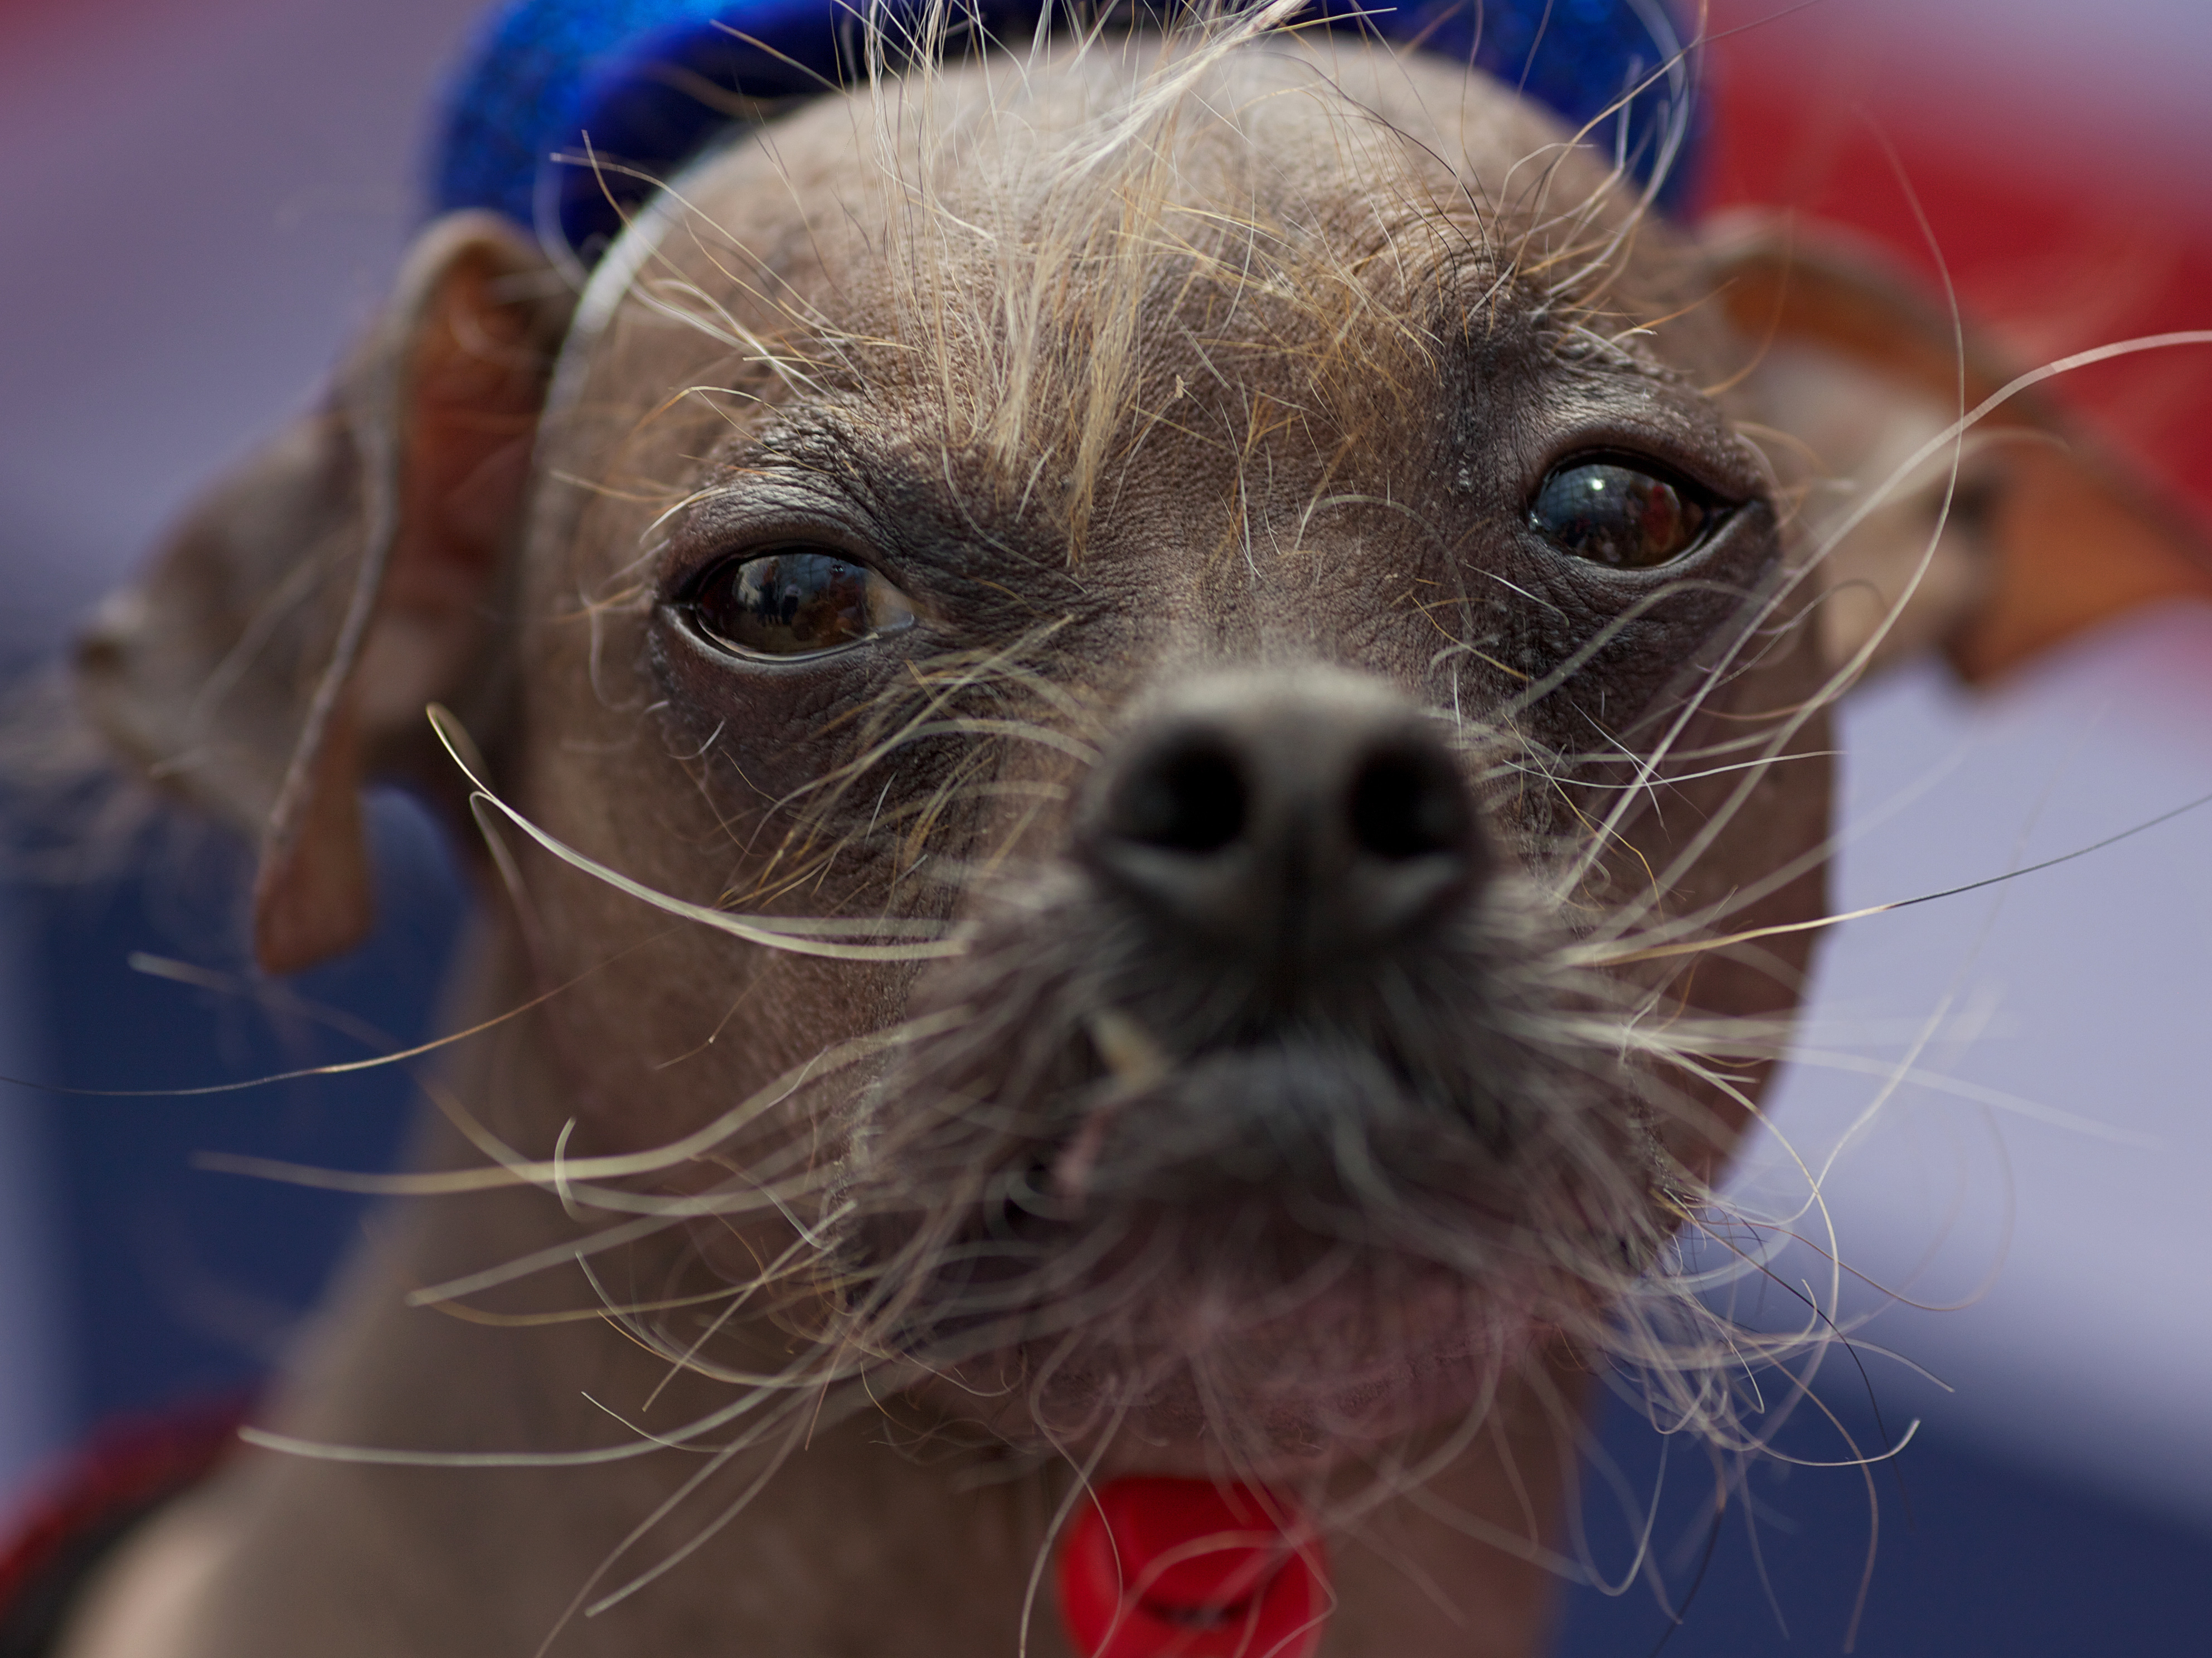 Is This Dog Really That Ugly? : The Two-Way : NPR